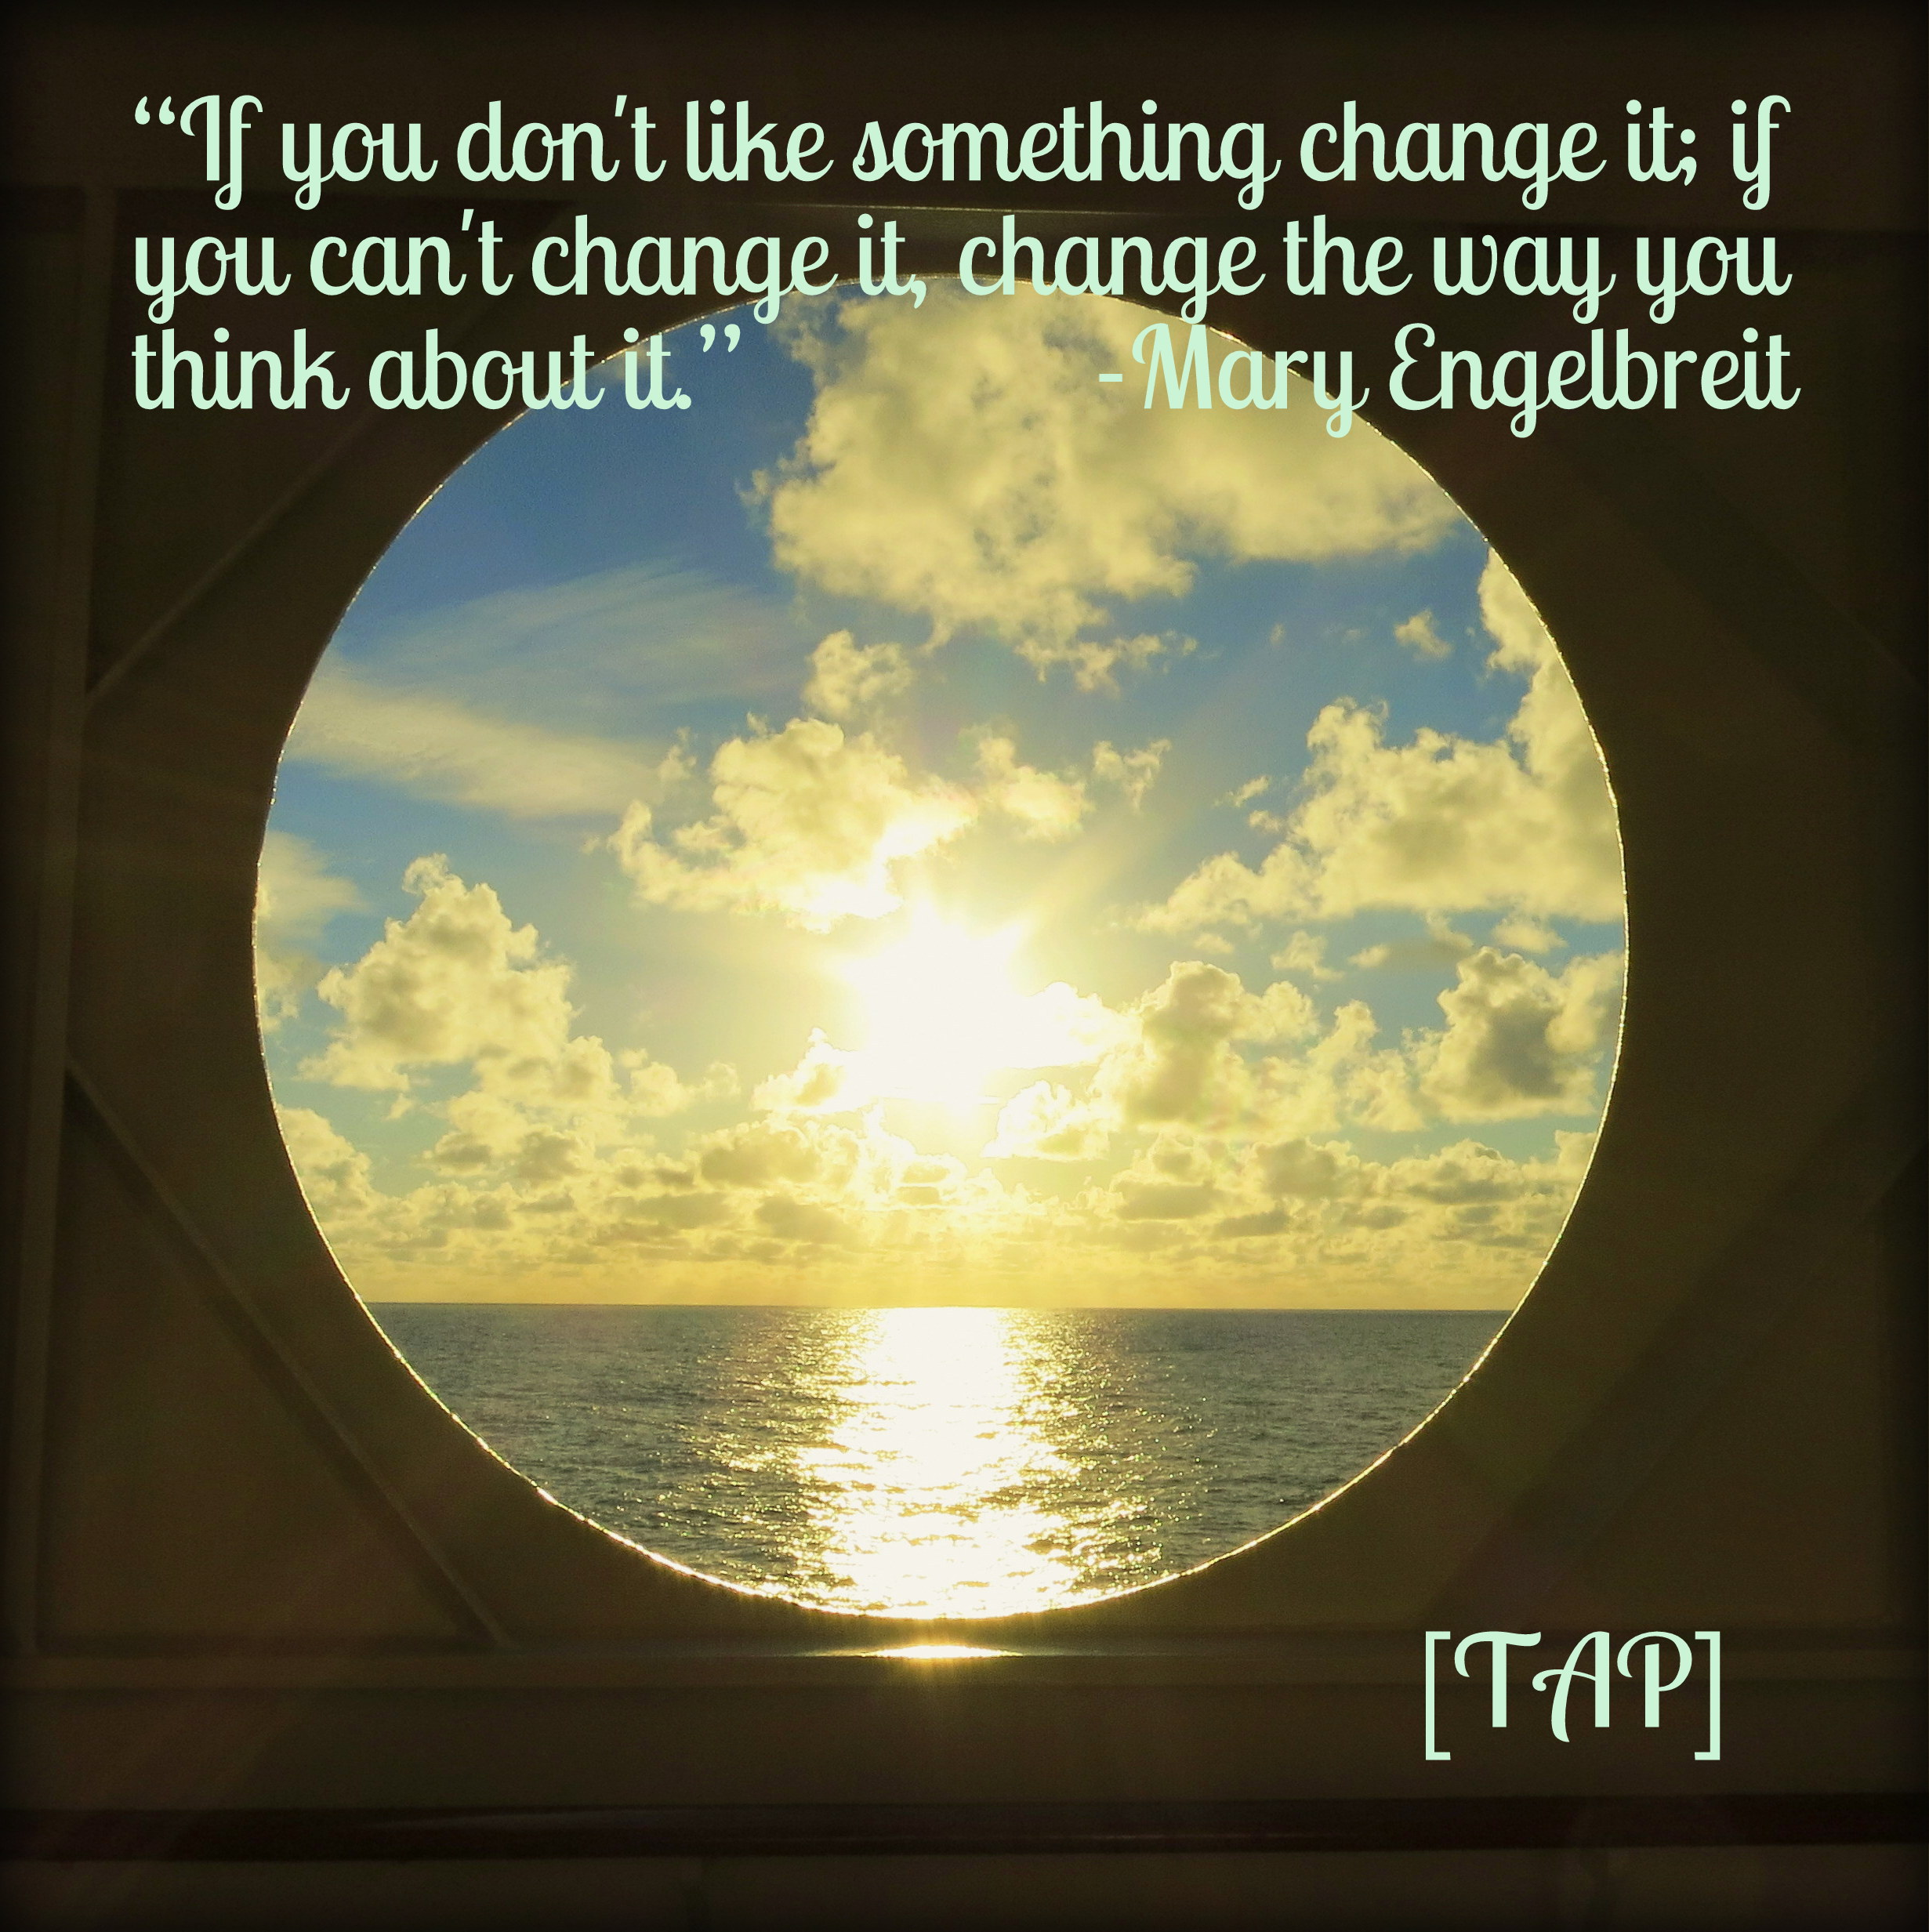 change the way you think about it 2.jpg